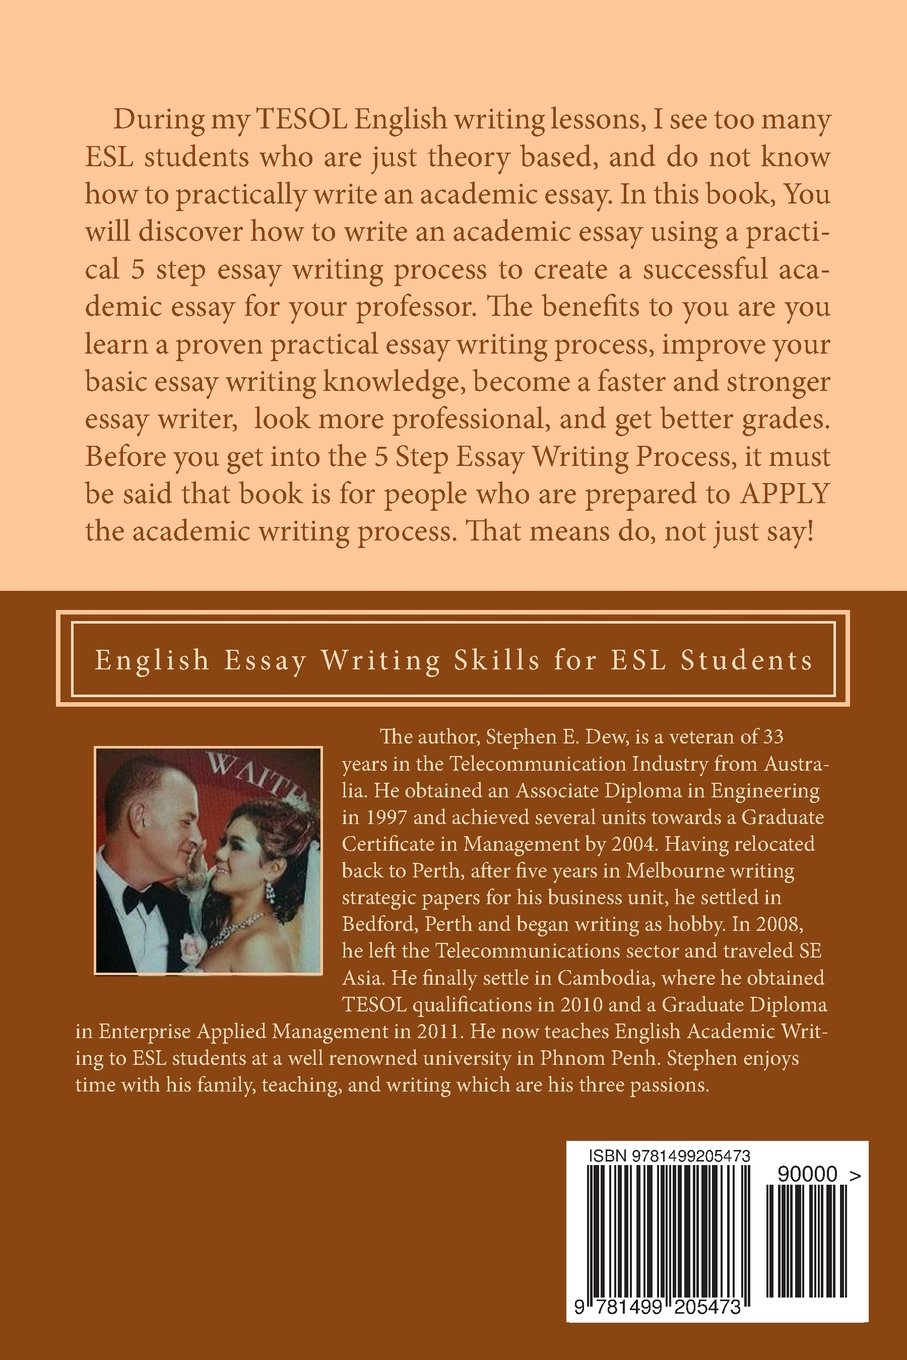 the 5 step essay writing process english essay writing skills for the 5 step essay writing process english essay writing skills for esl students academic writing skills volume 3 mr stephen e dew 9781499205473